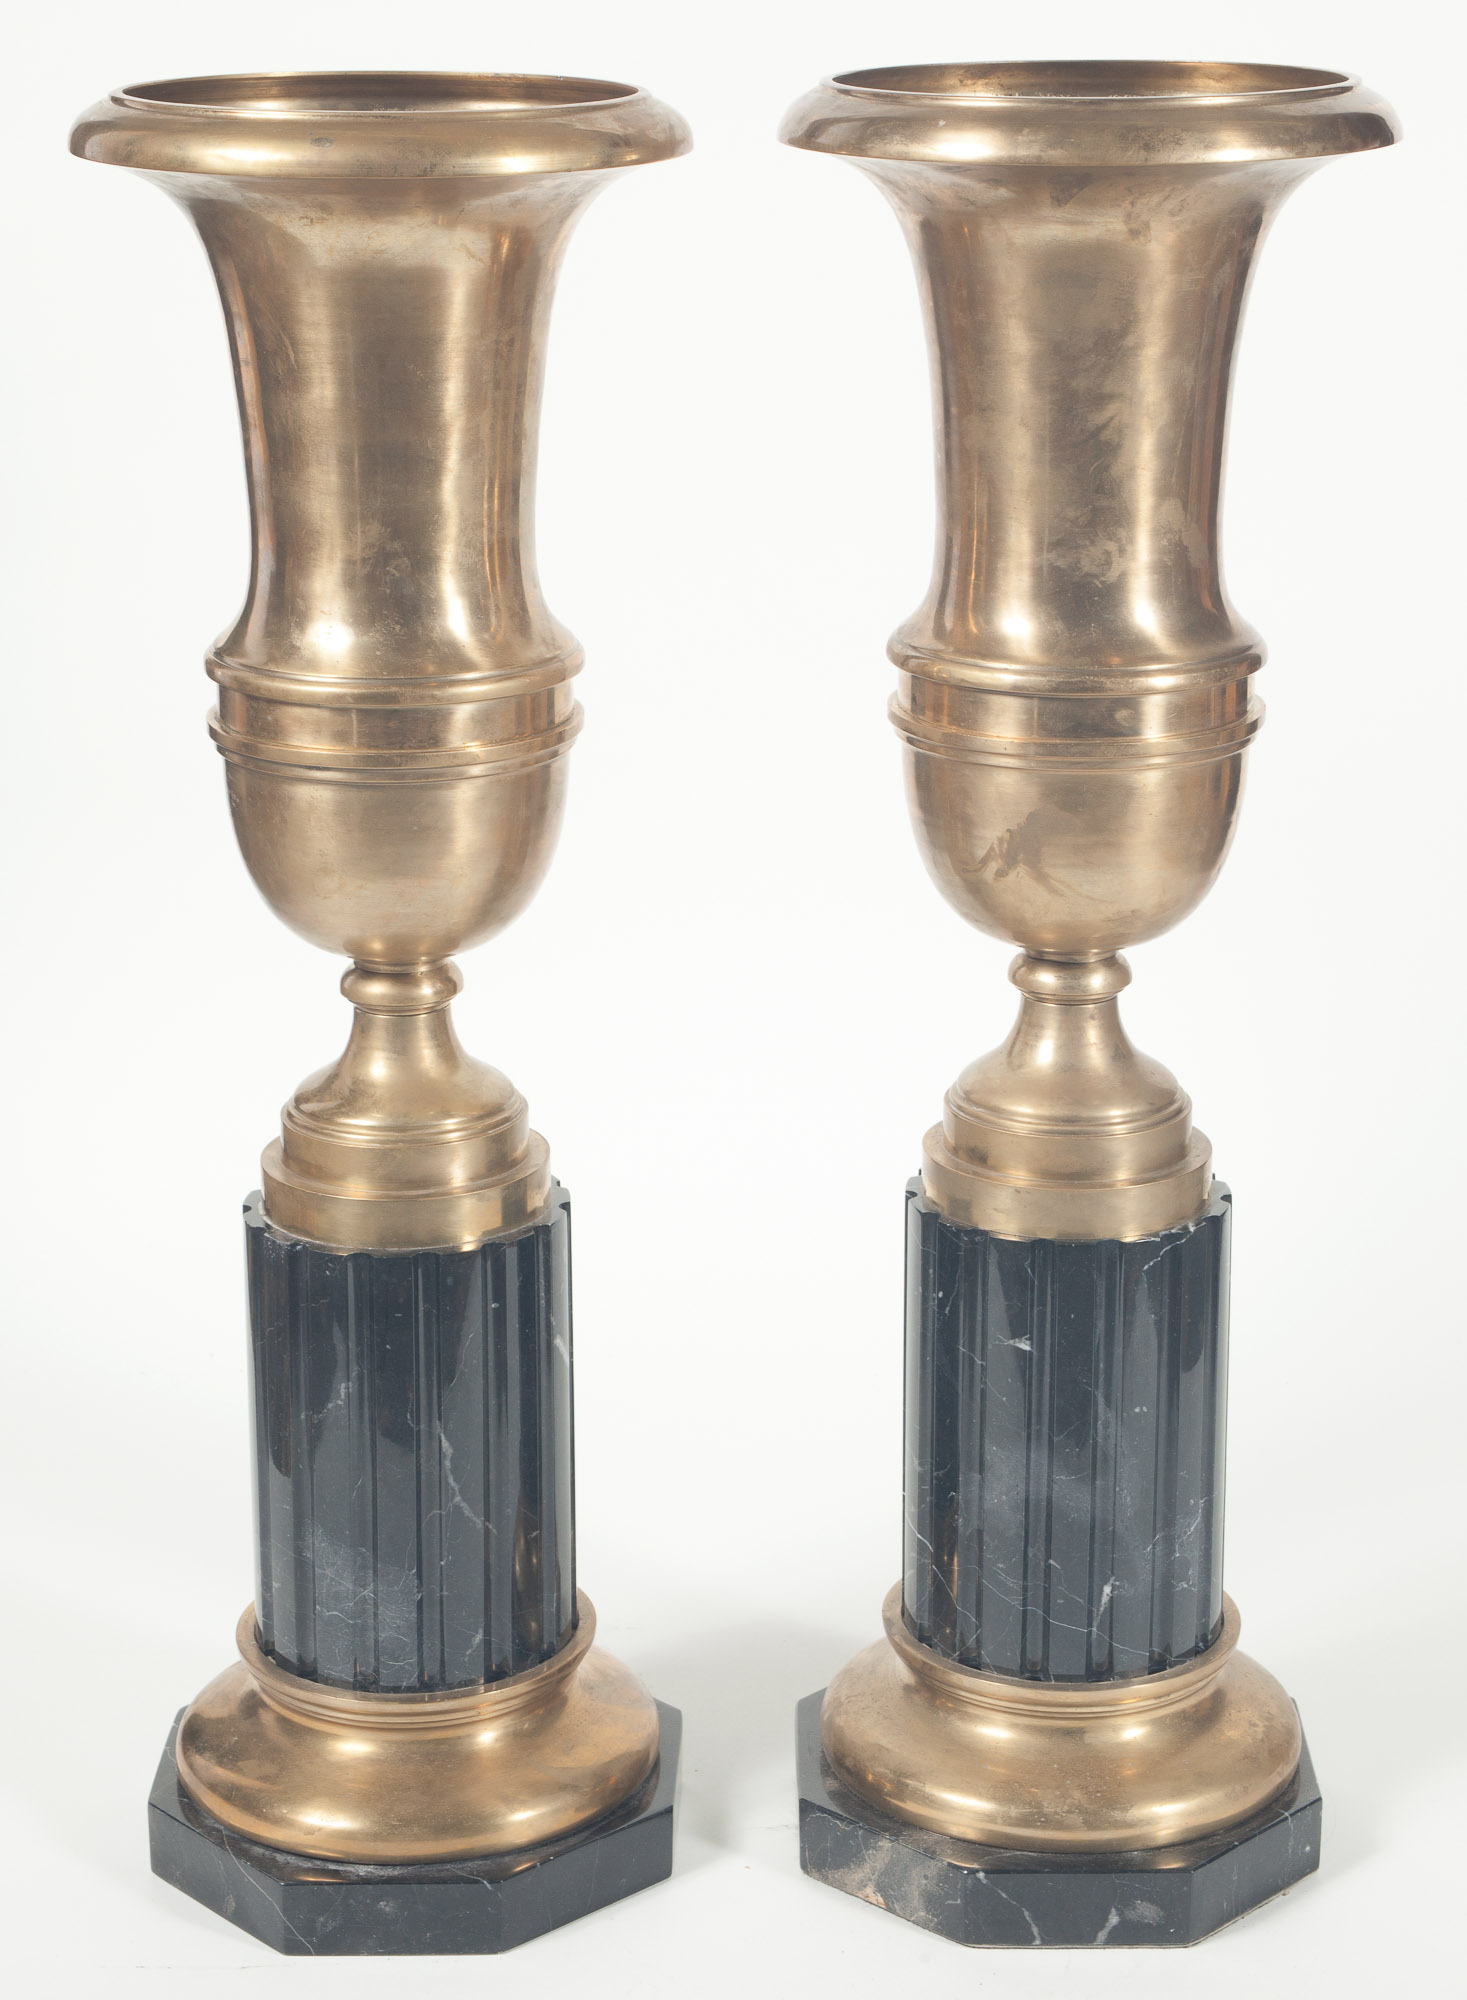 Lot image - Pair of Neoclassical Style Brass and Black Marble Urn-Form Vases on Pedestals